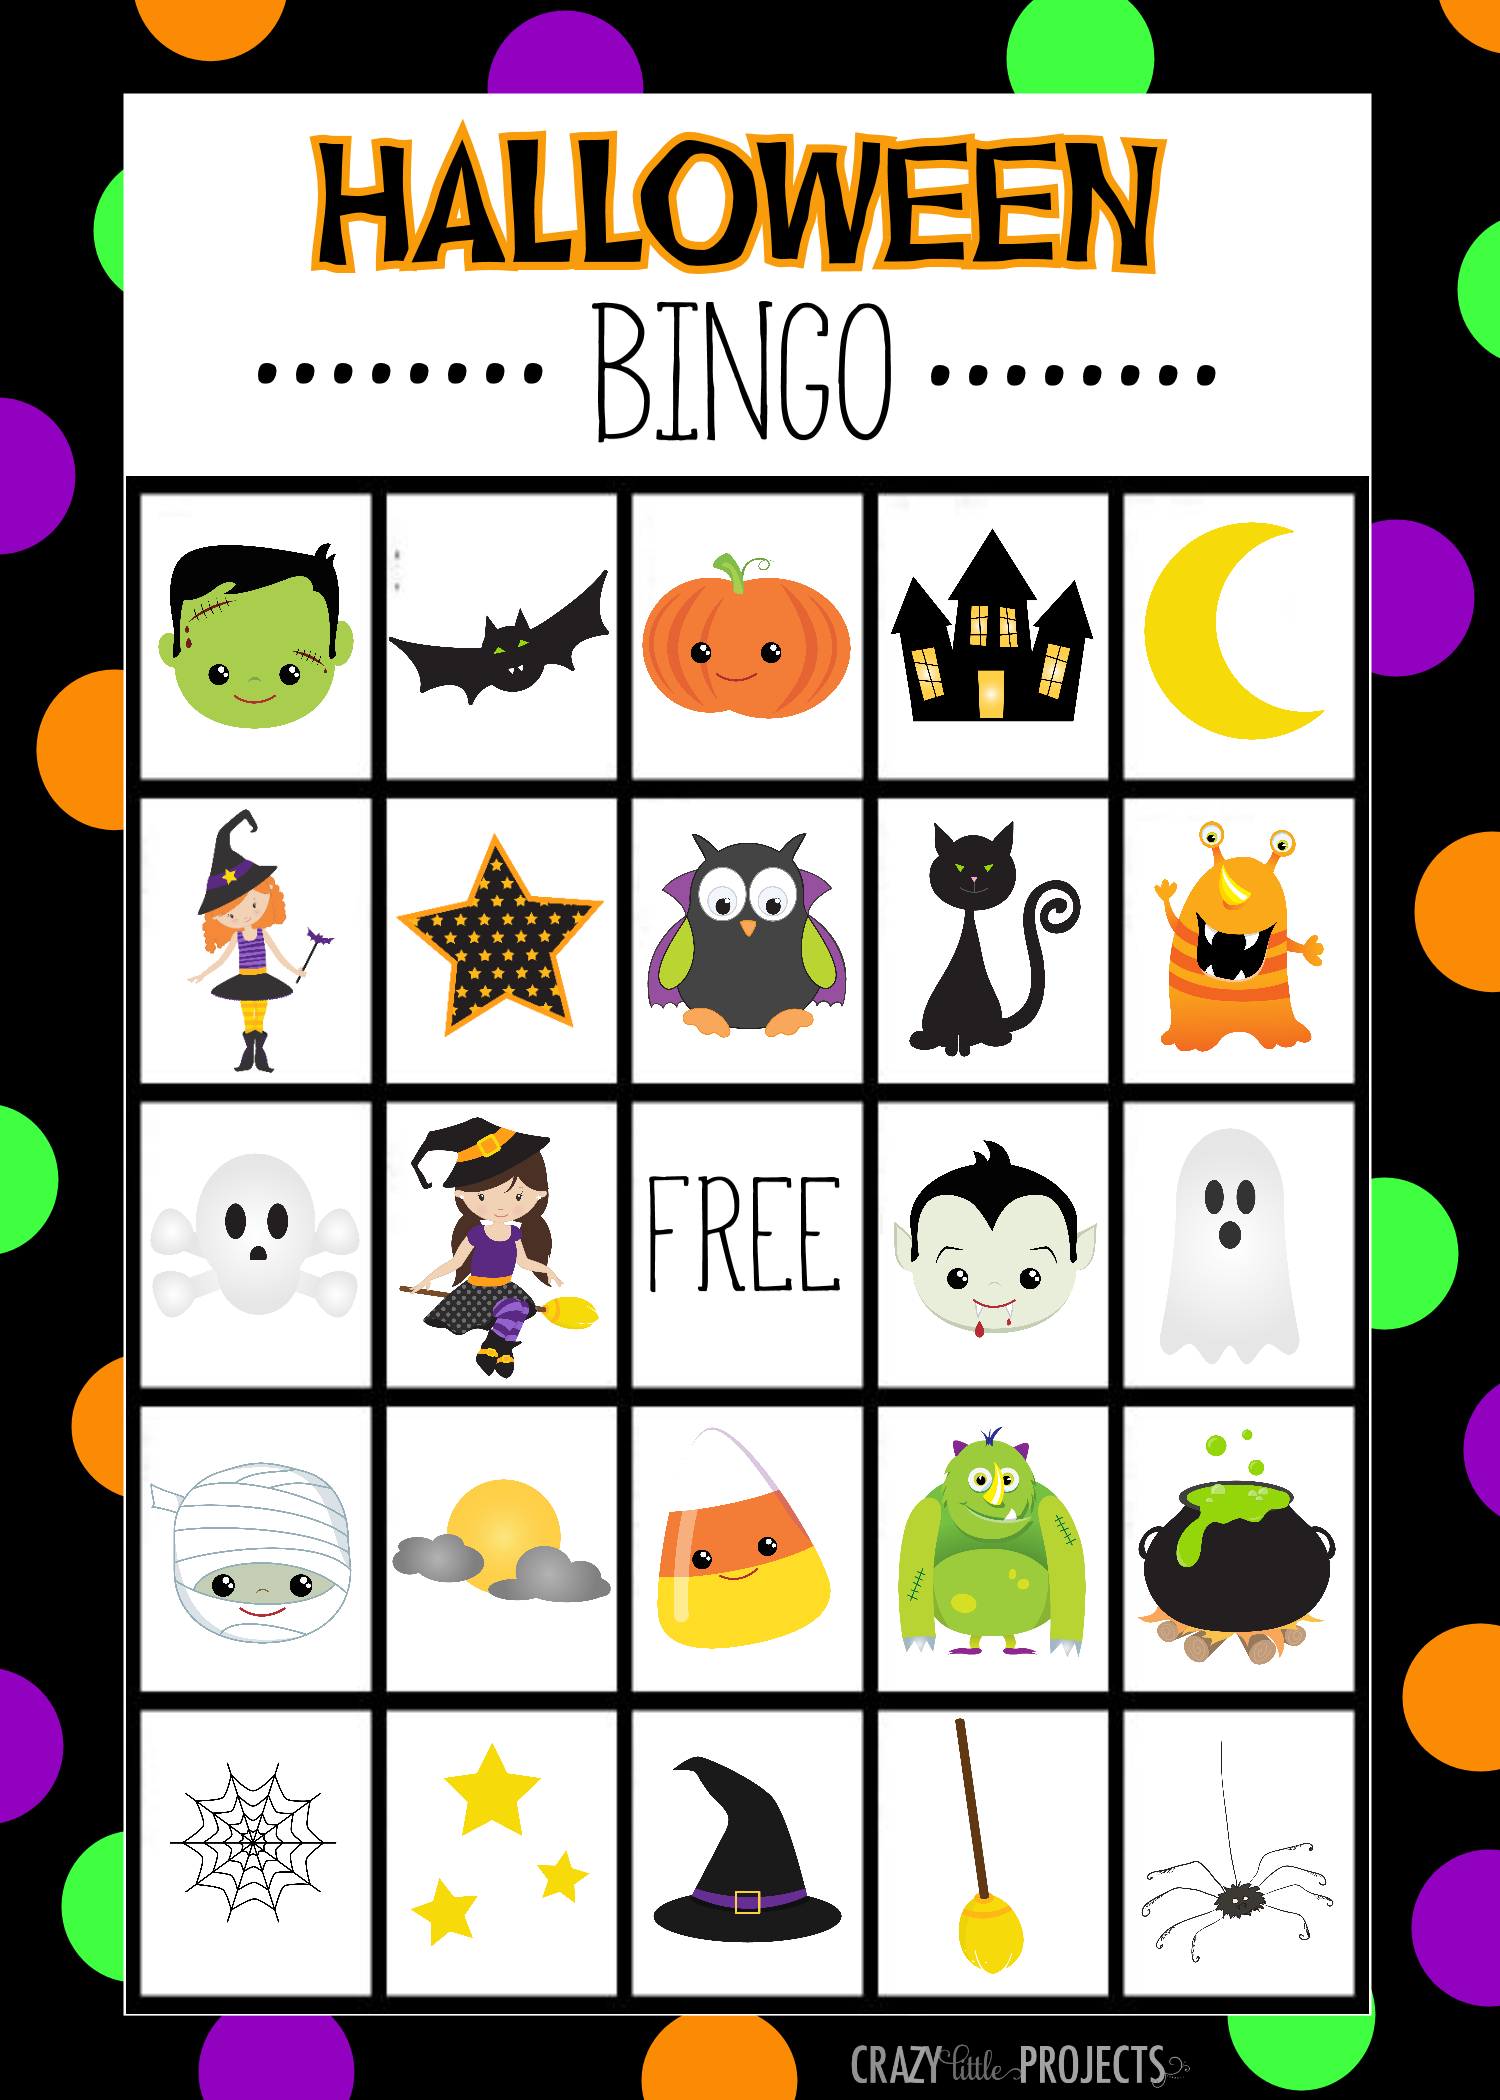 Halloween Bingo - Cute Free Printable Game | Halloween Bingo